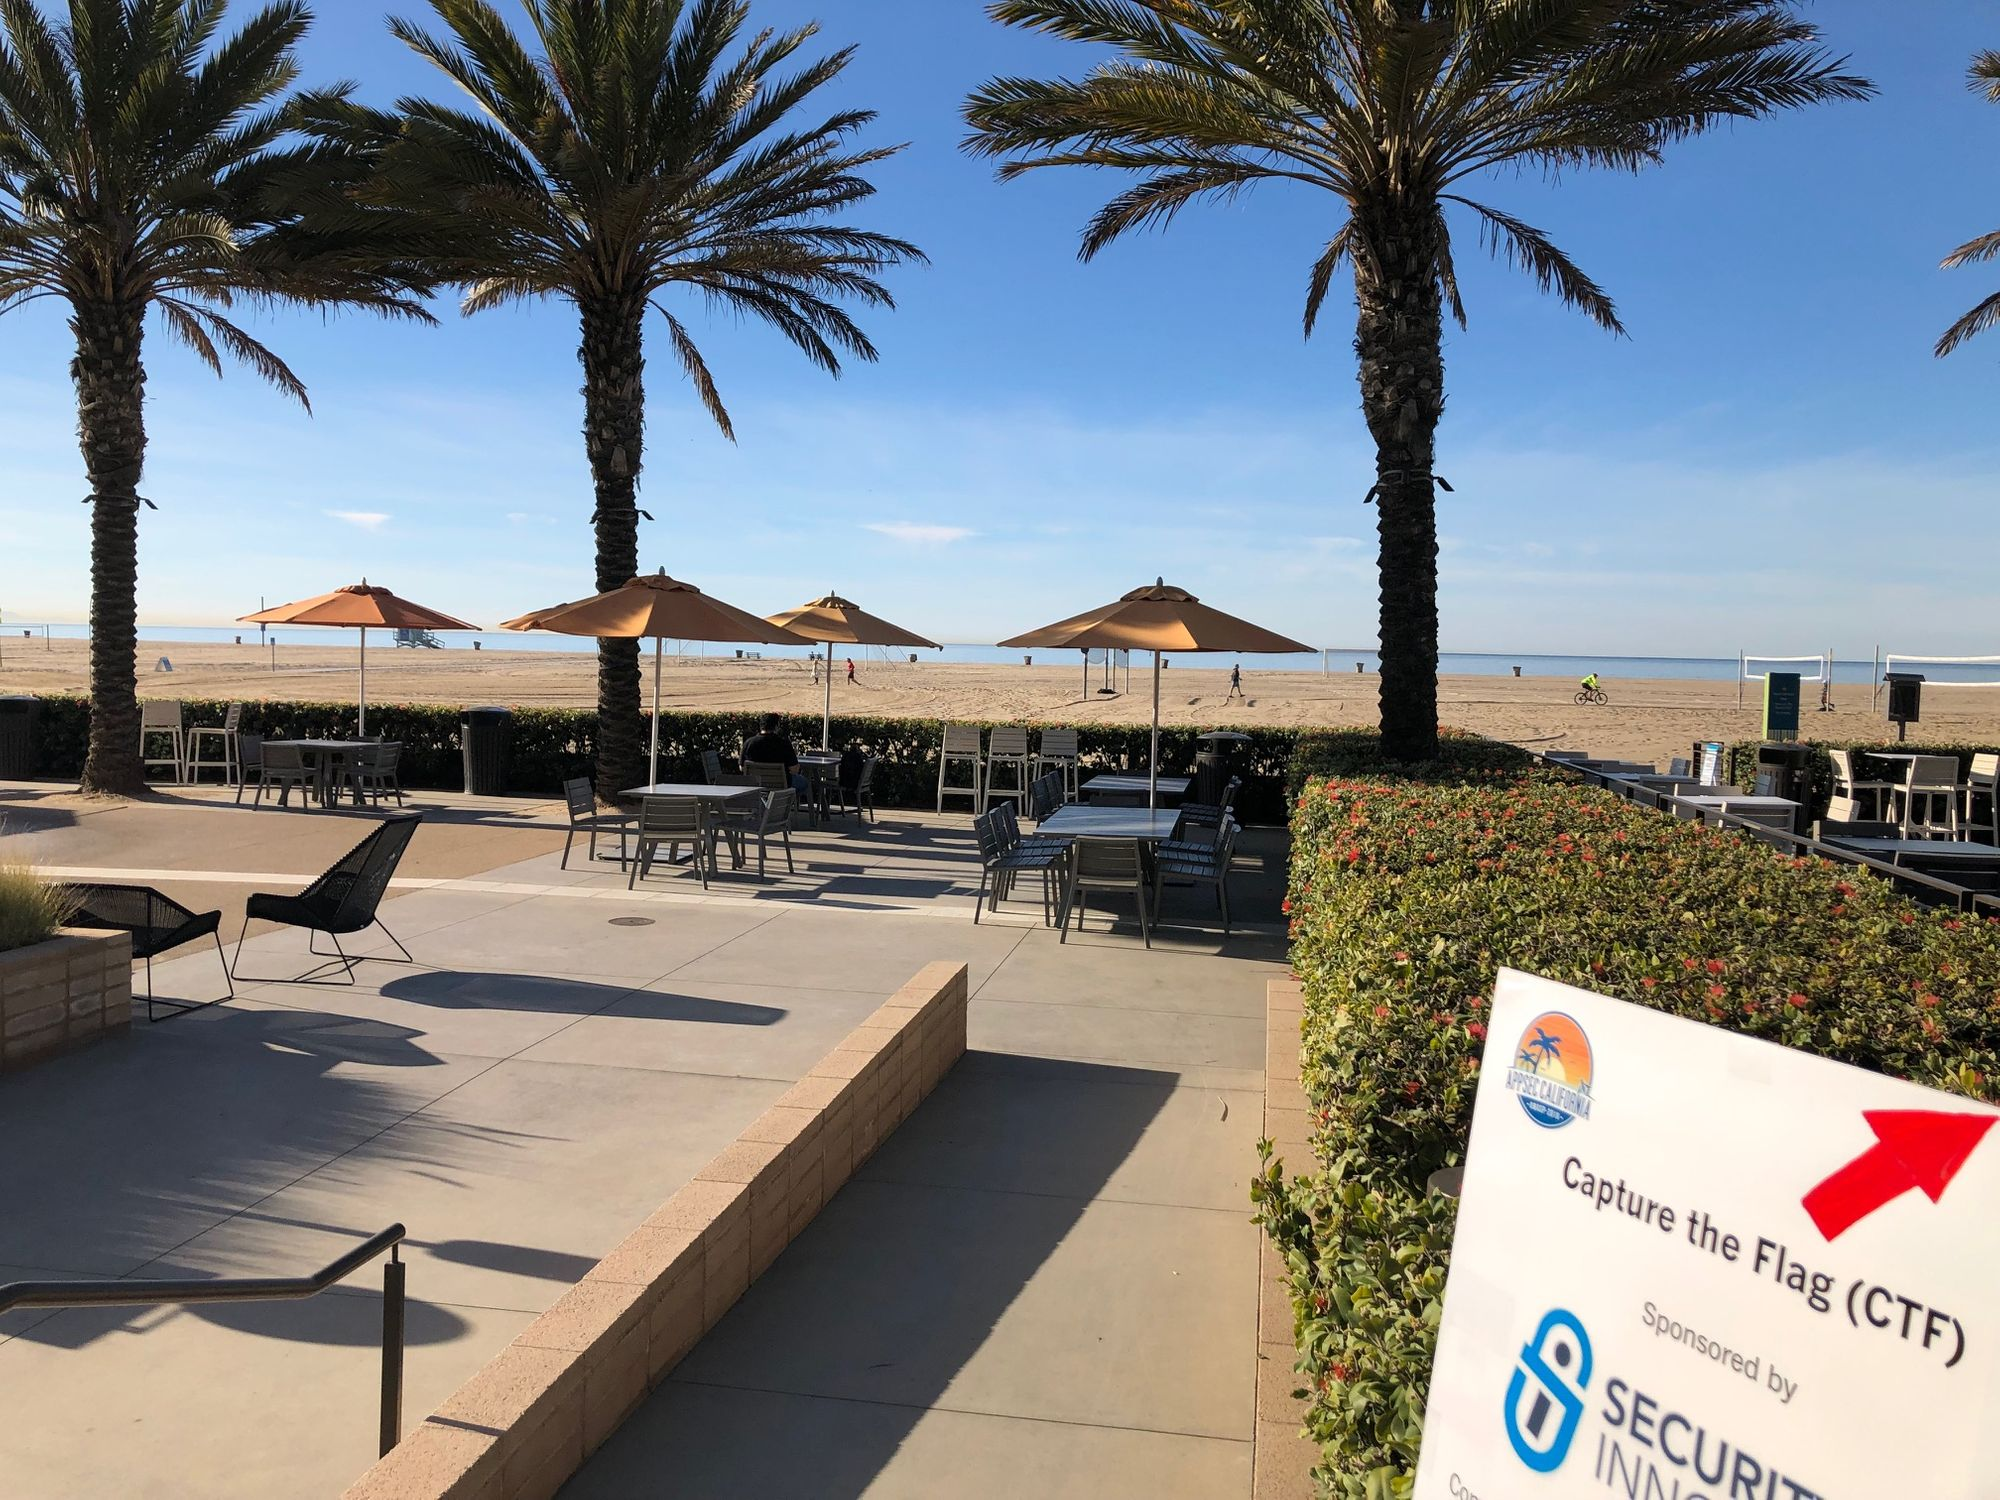 There is a patio to the side of the Annenberg Community Beach House where you can relax, eat, and see the scenic view. Did I mention the event also hosted a Capture the Flag event? Photo courtesy from Miguel A. Calles, MBA.